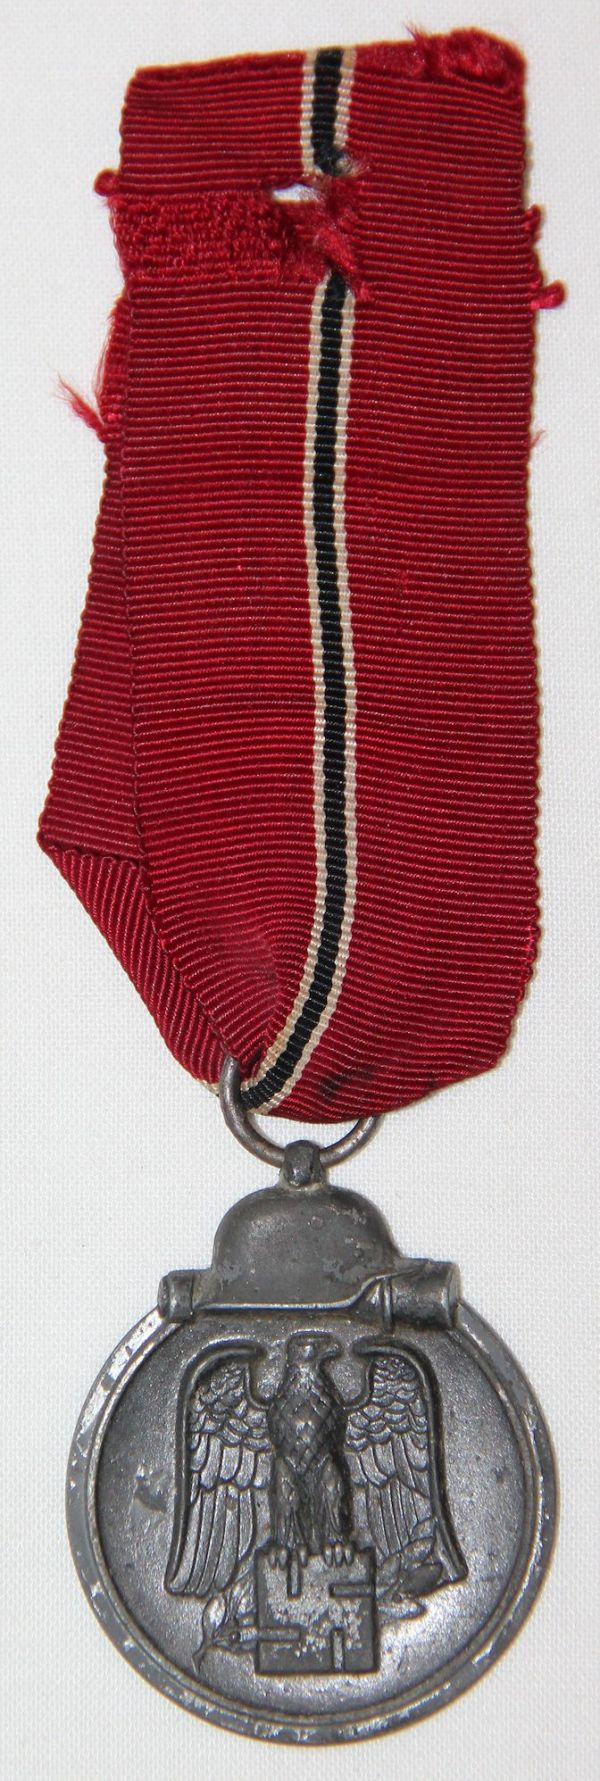 Q042. WWII GERMAN HALLMARKED 1941-1942 RUSSIAN FRONT MEDAL